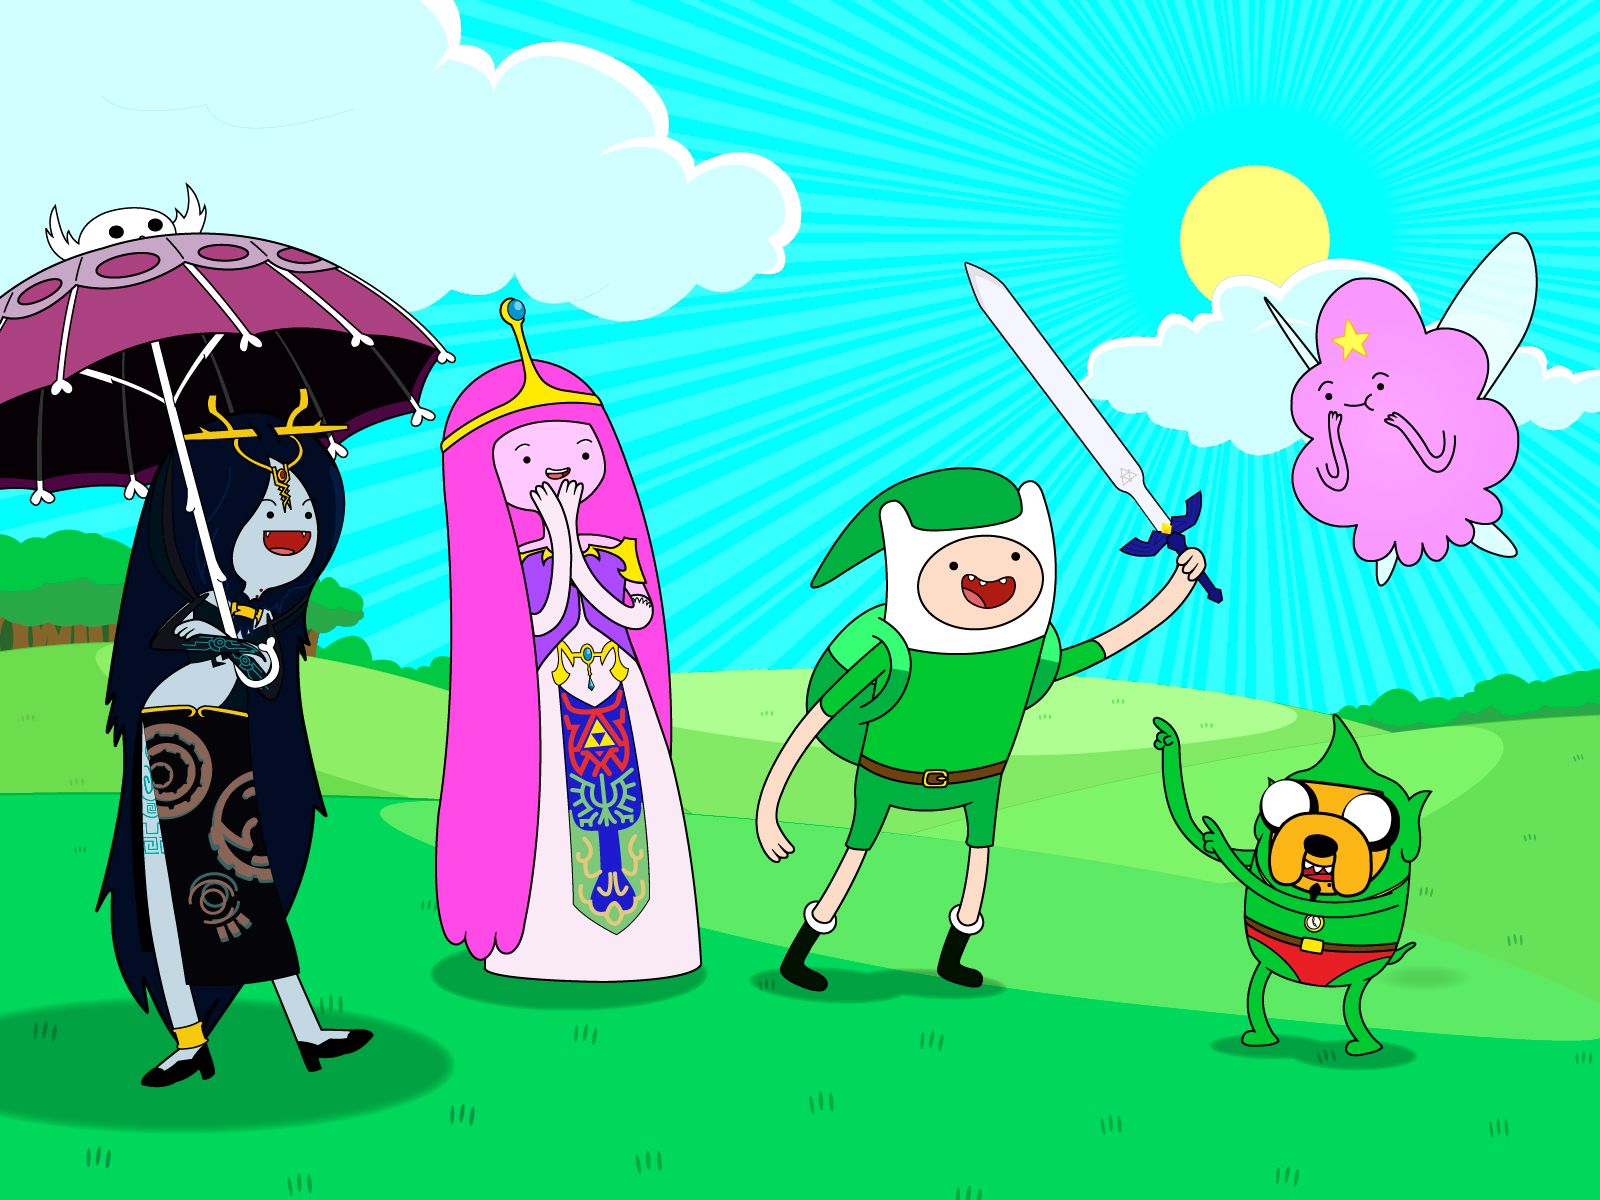 Character Design Adventure Time : Super kuka papel de parede hora aventura